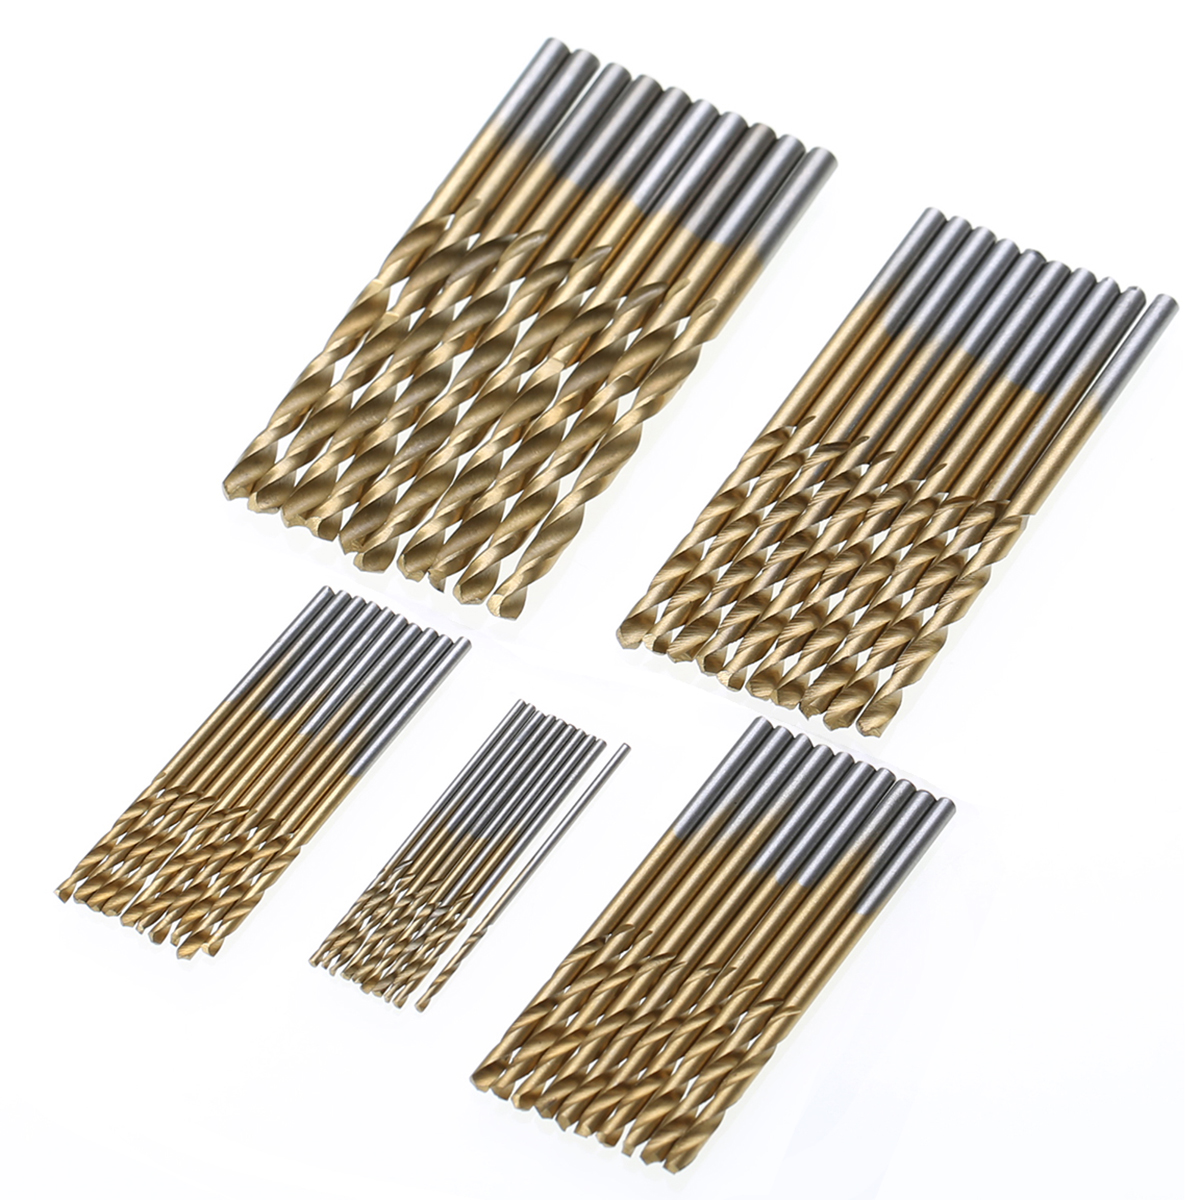 50pcs Titanium Coated Drill Bits Set Mayitr HSS Mini Extractor Drill Bit 1/1.5/2/2.5/3mm For Metal Wood Aluminum Drilling Tools new 10pcs jobbers mini micro hss twist drill bits 0 5 3mm for wood pcb presses drilling dremel rotary tools